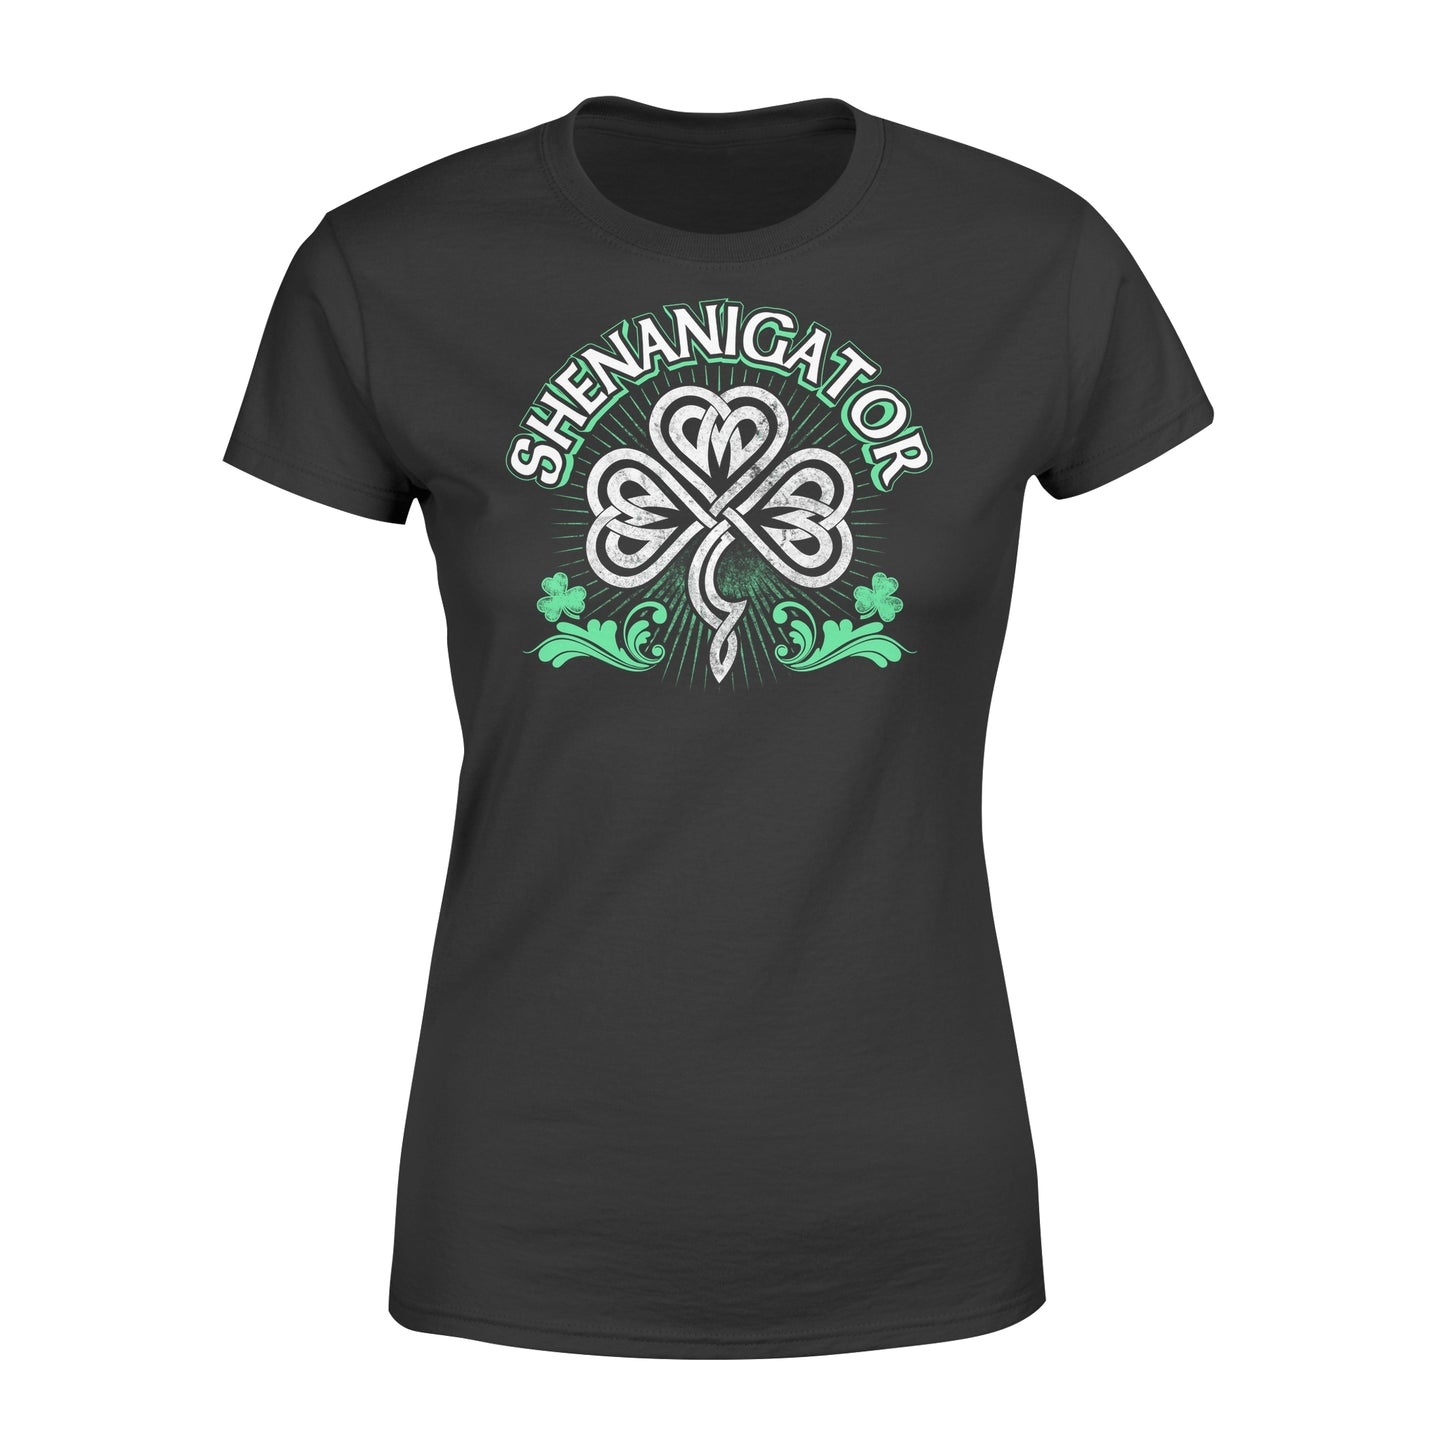 Shenanigator Irish St Patrick's Day - Standard Women's T-shirt Apparel XS / Black